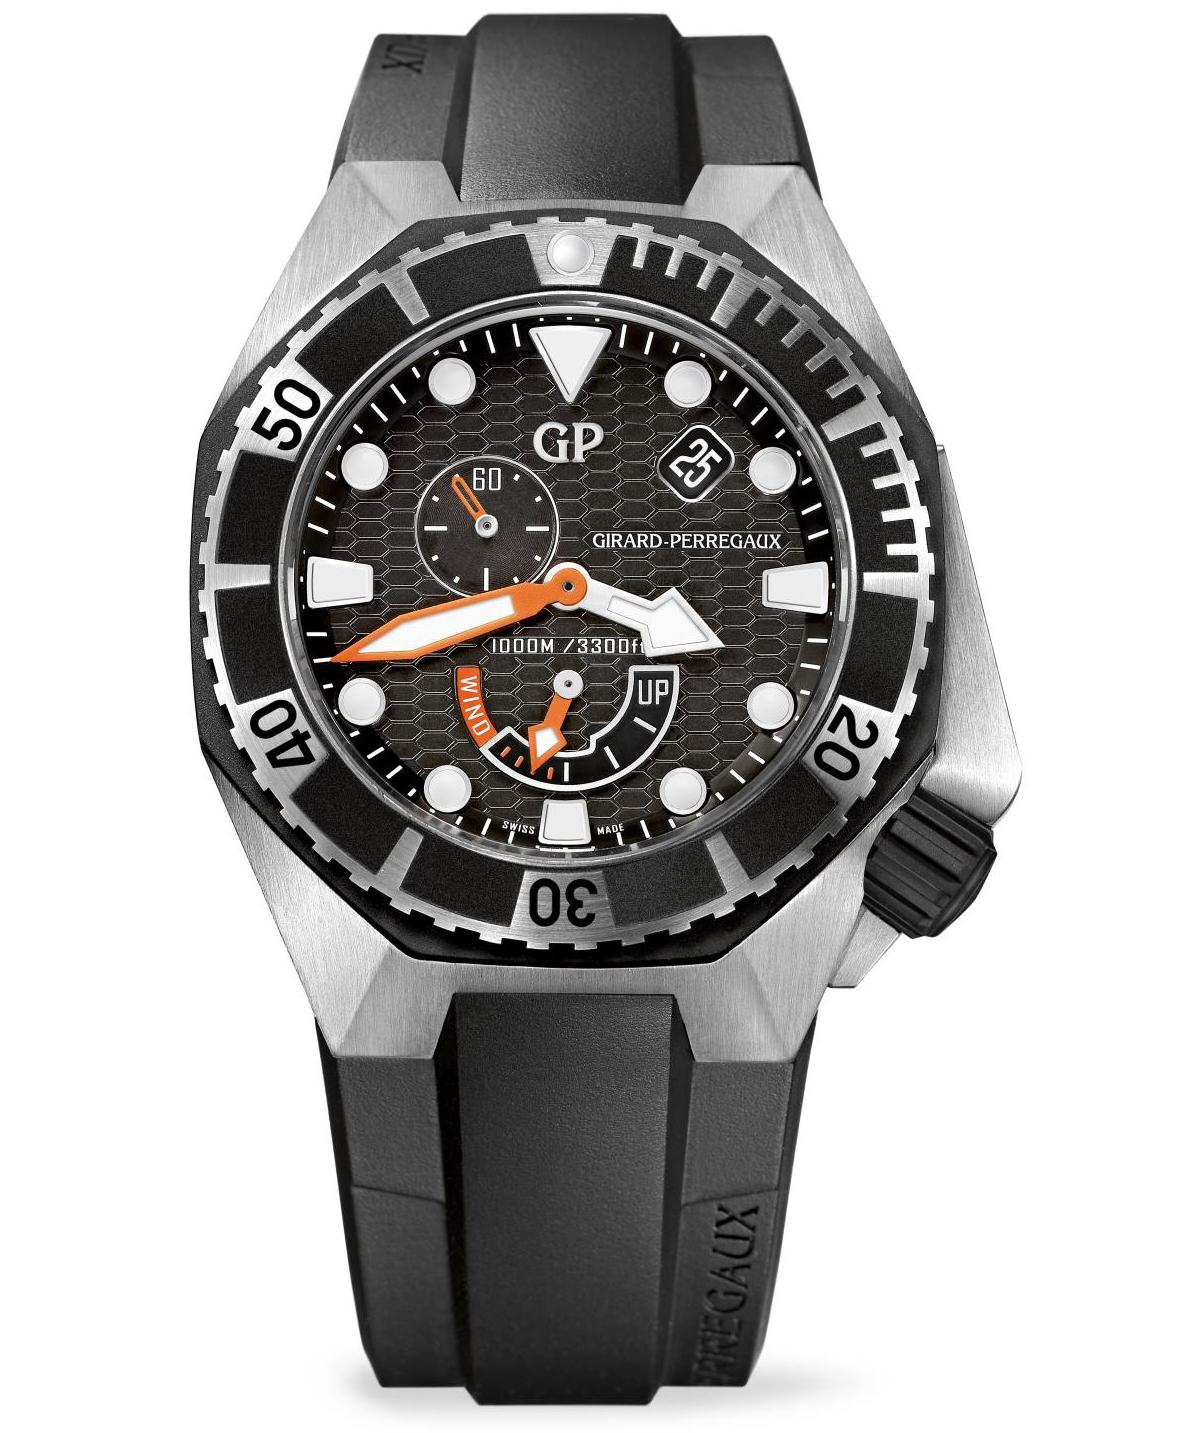 Girard-Perregaux Sea Hawk Diver_0-1005 - Copia (2)